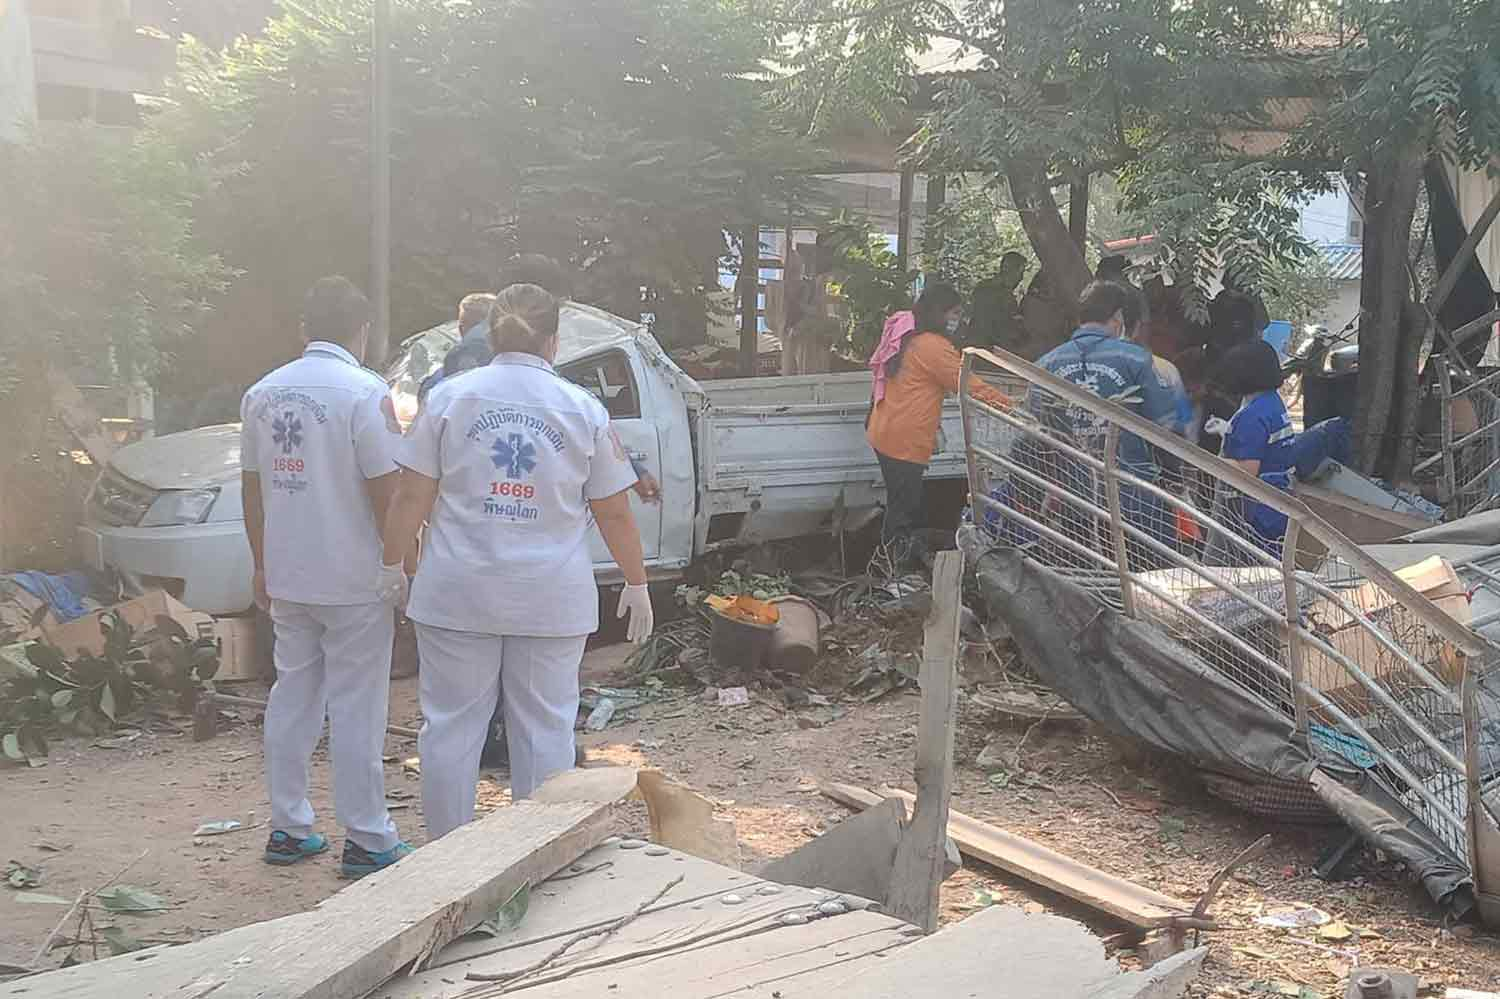 Rescuers with the pickup that ran off Highway 11 and crashed into a house in Phrom Phiram district, Phitsanulok. Five Myanmar workers were injured. (Photo: Chinnawat Singha)